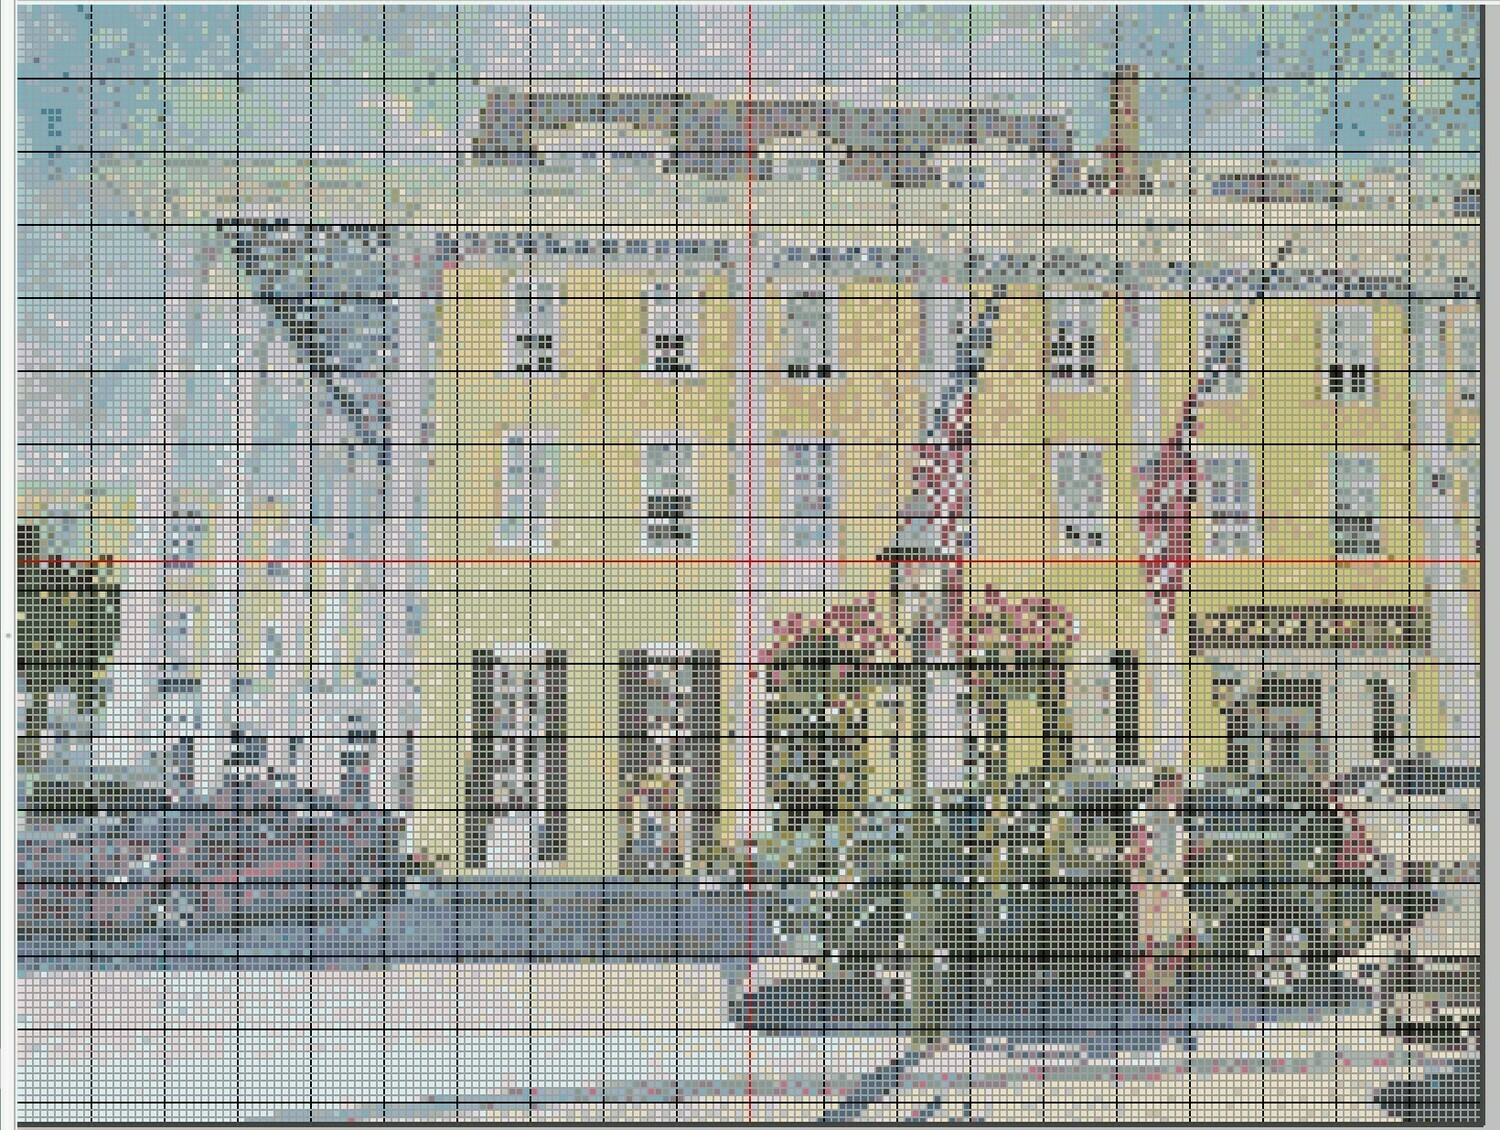 Beautiful Cape May NJ Congress Hall Cross Stitch - Pattern Only - Instant Digital Download